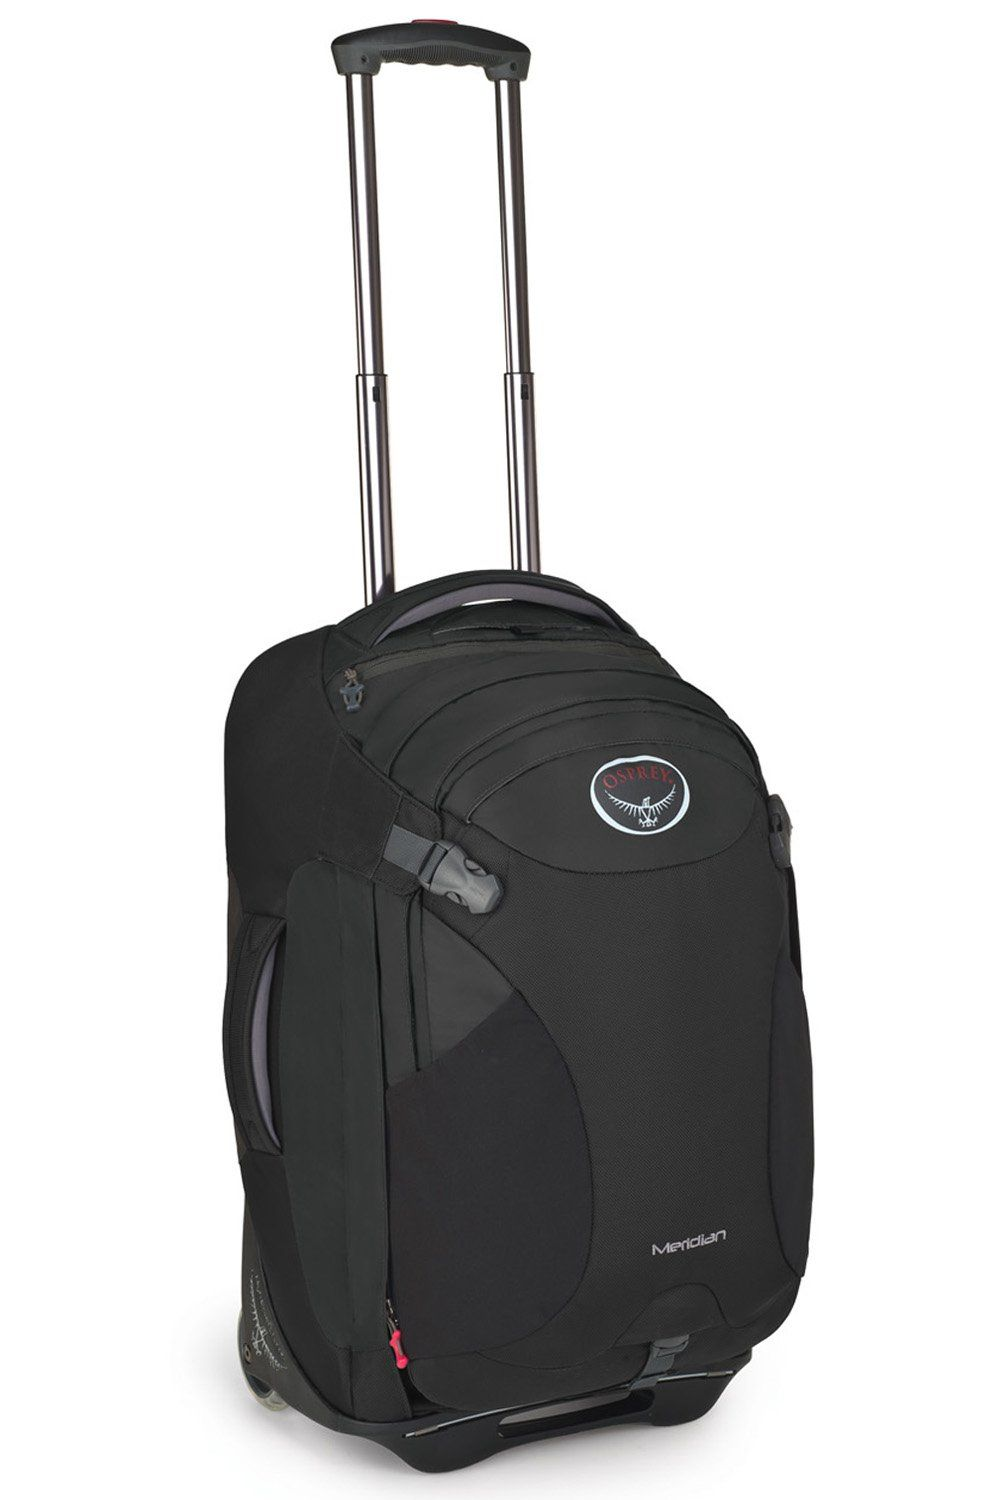 Osprey Sojourn 60 Wheeled Travel Backpack Flash Black  584550665ae97